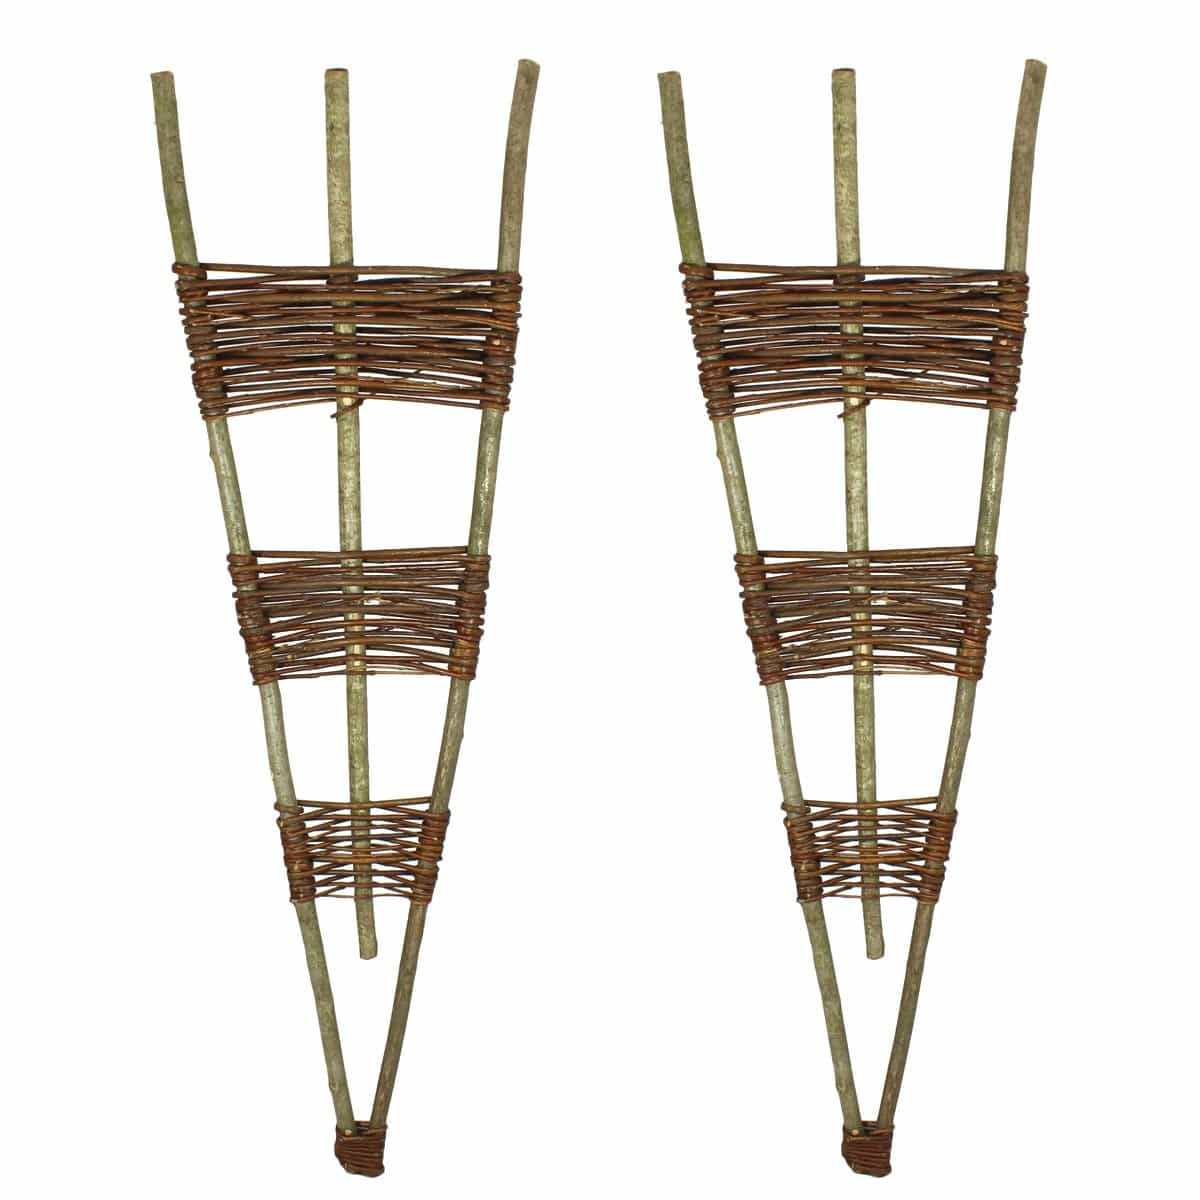 Treillis ventail en noisetier osier lot de 2 for Treillis support plante grimpante